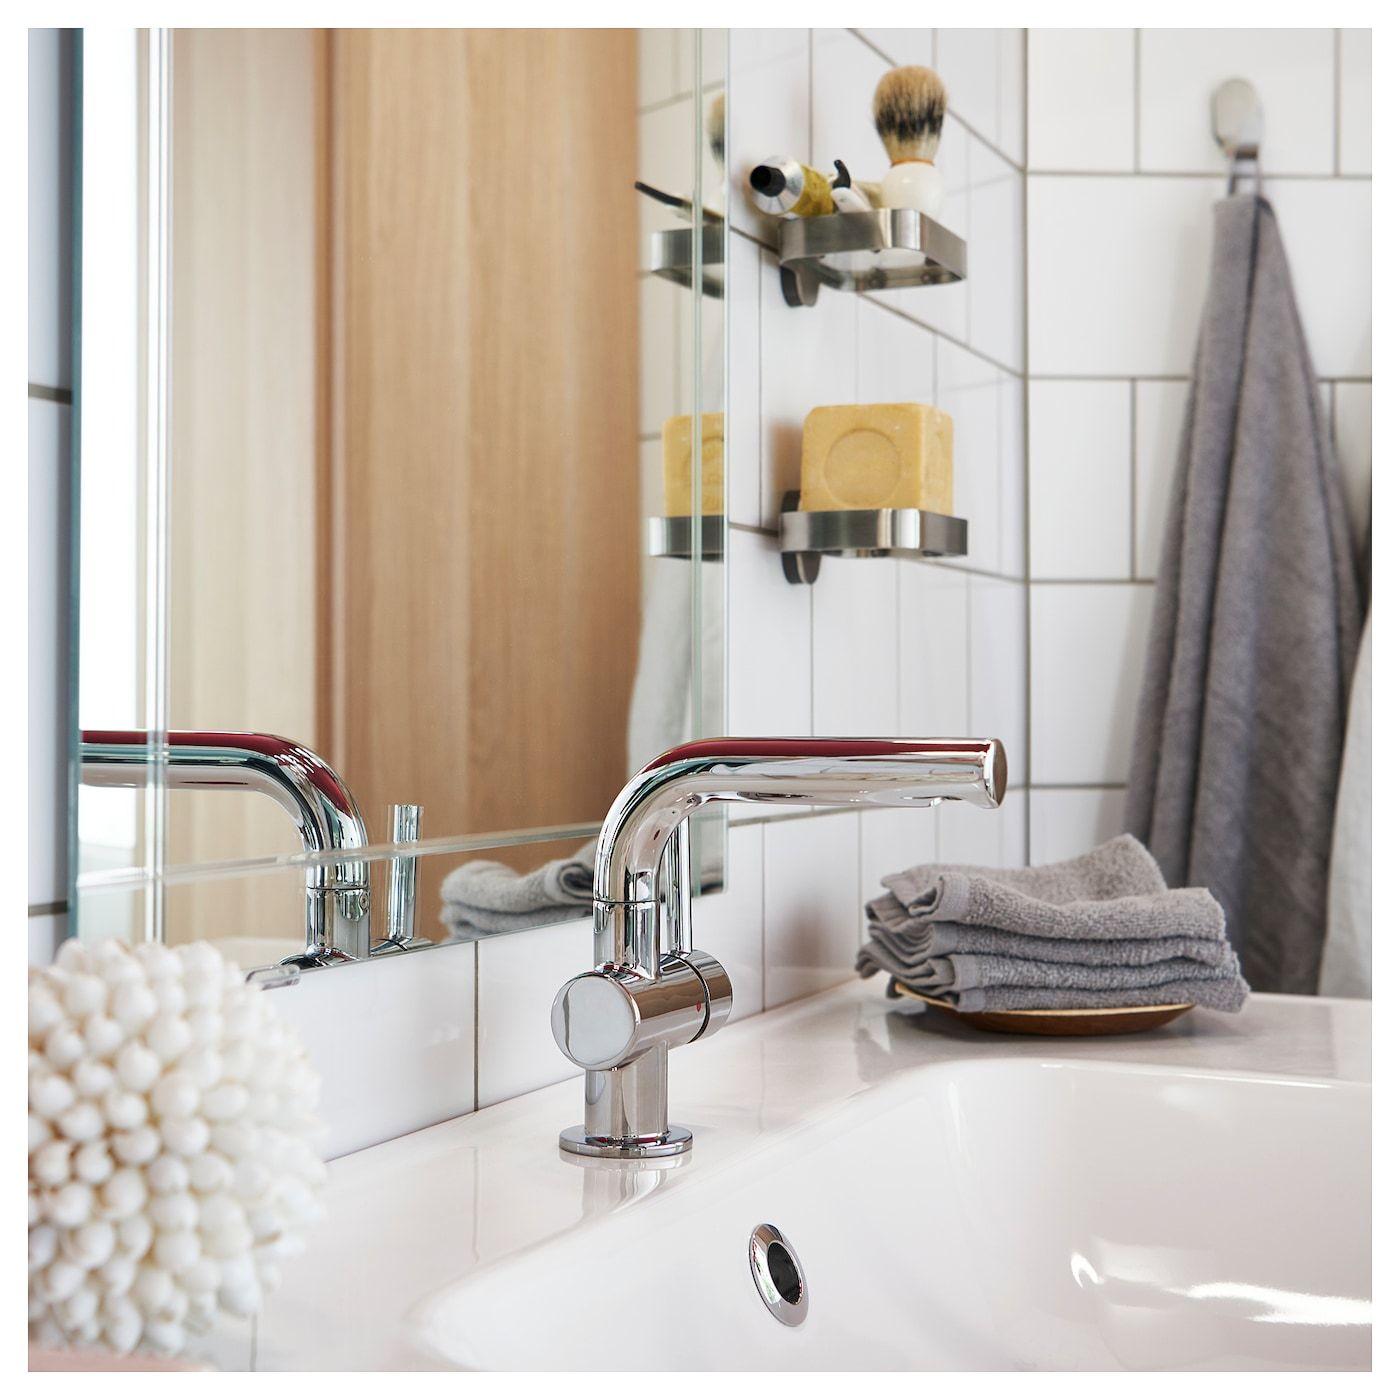 SVENSKÄR Wash-basin mixer tap with strainer - chrome-plated